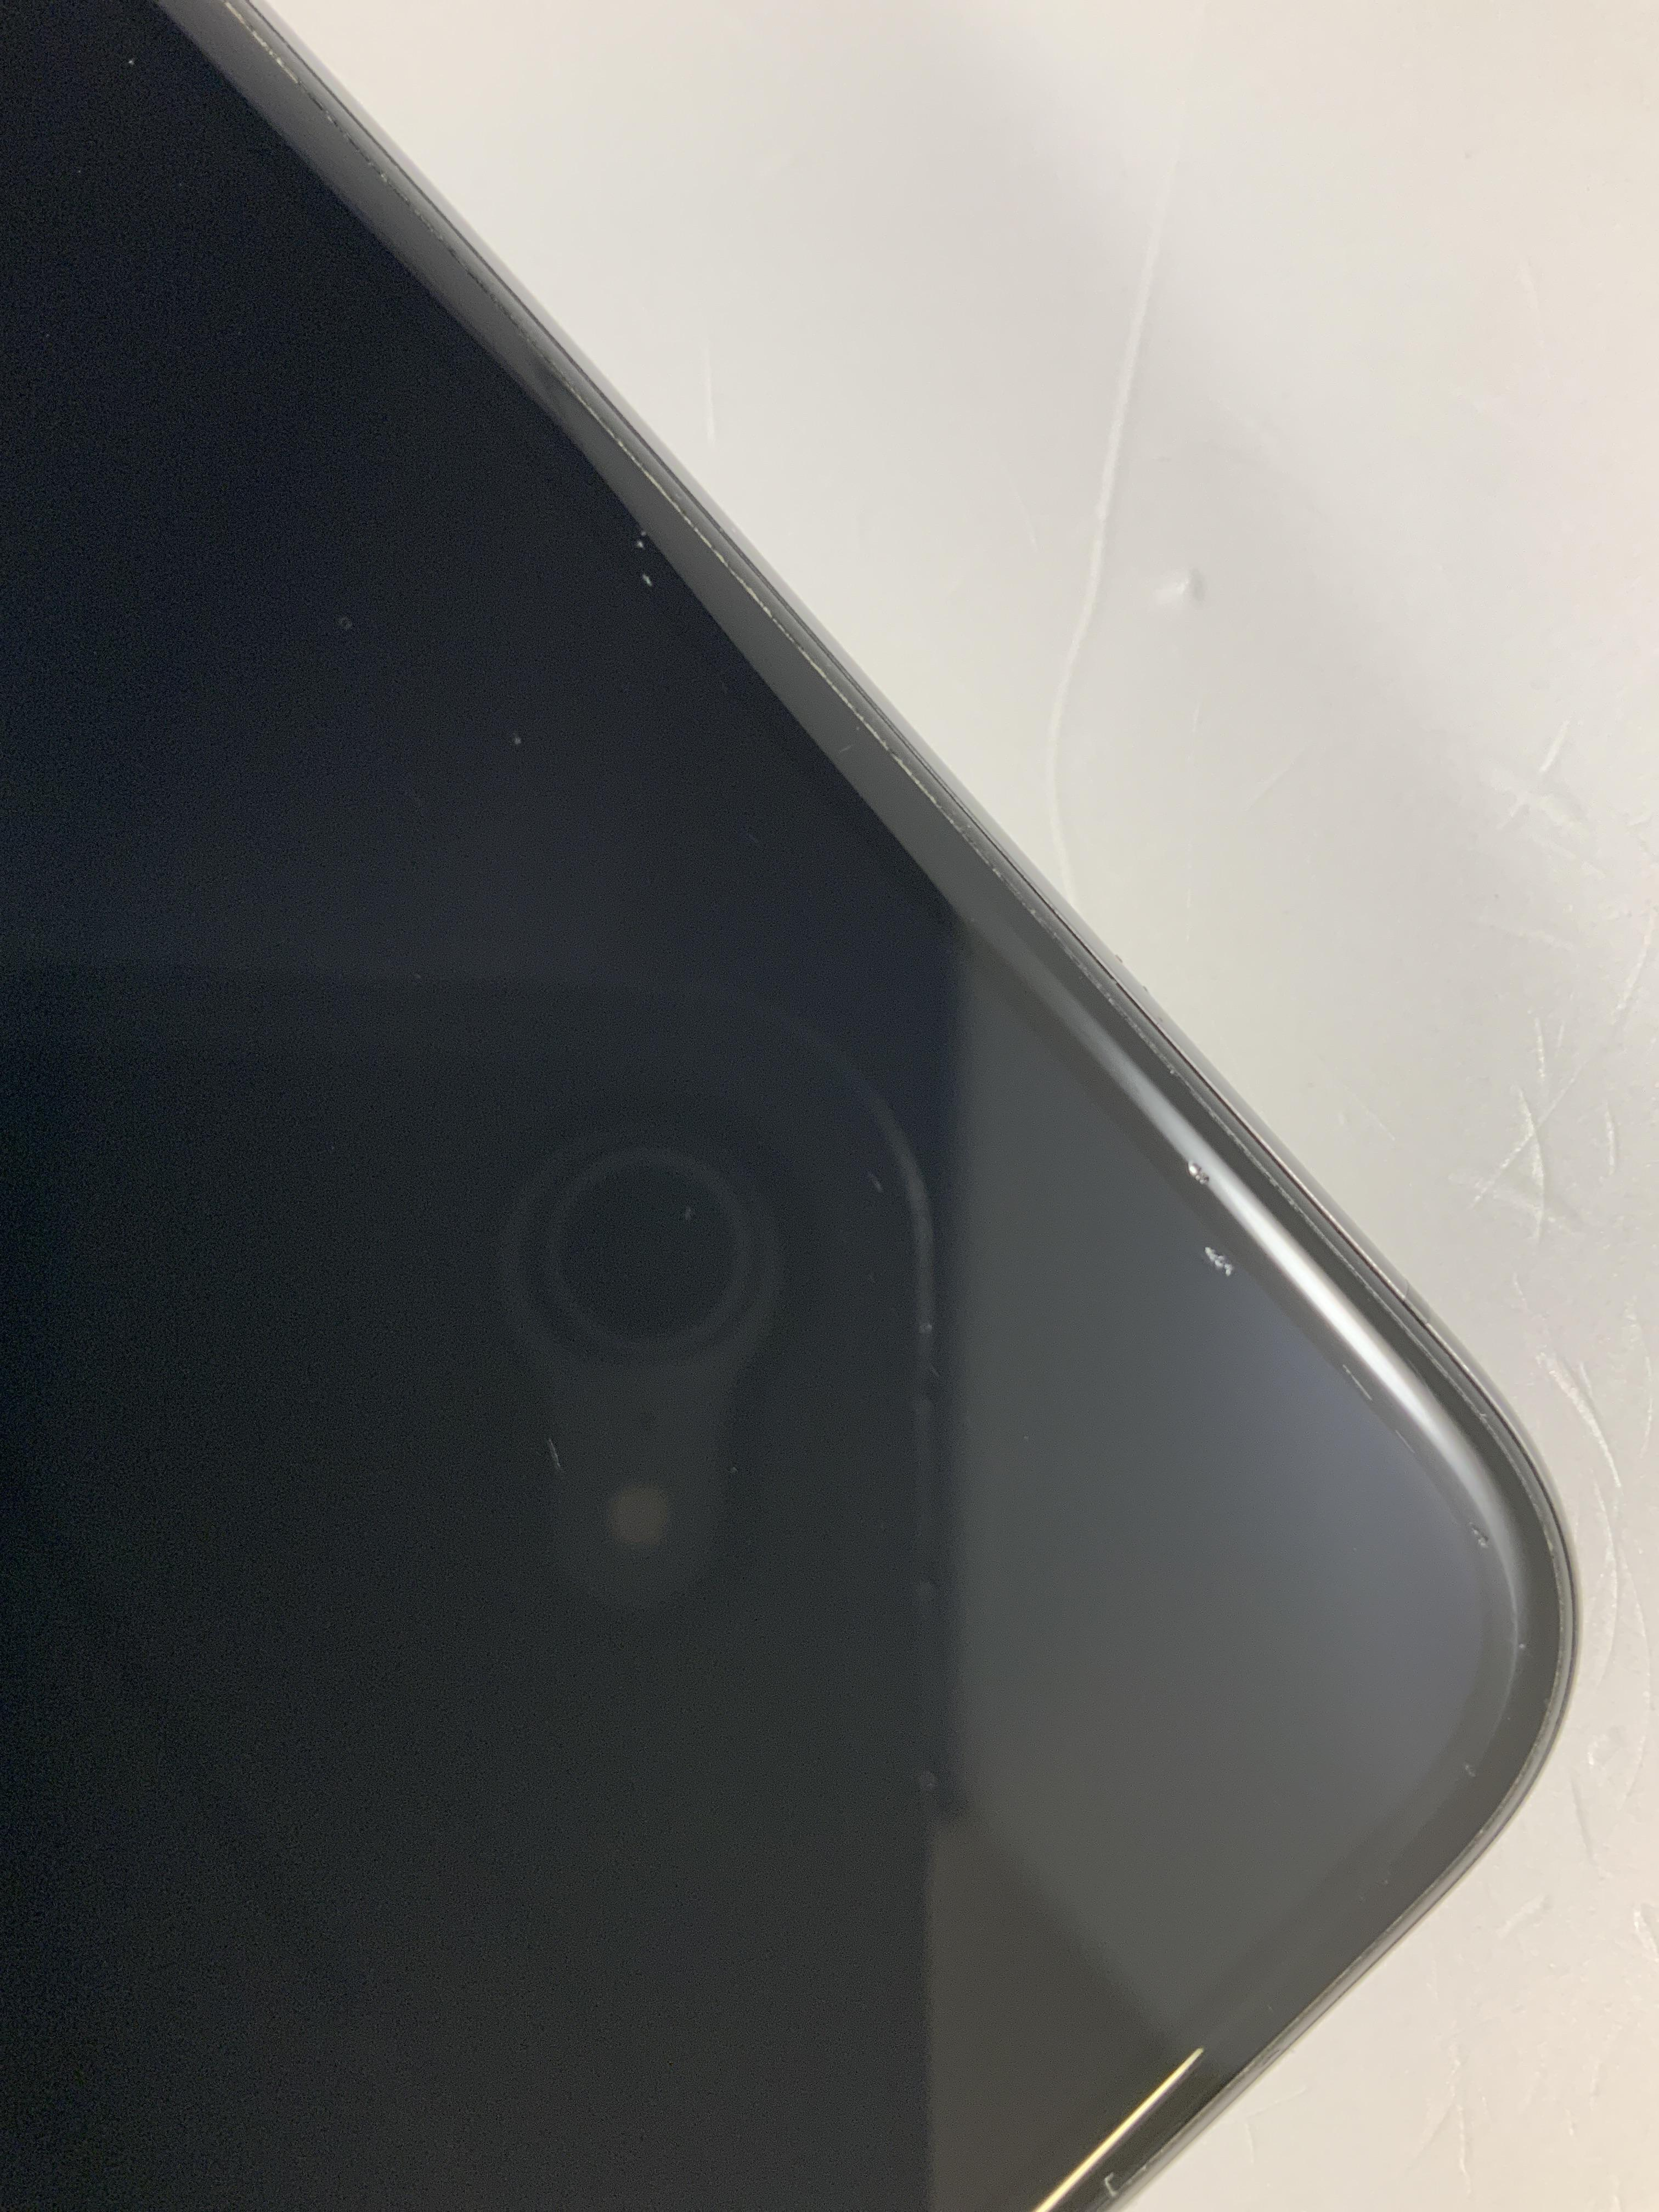 iPhone XS Max 512GB, 512GB, Space Gray, Bild 3